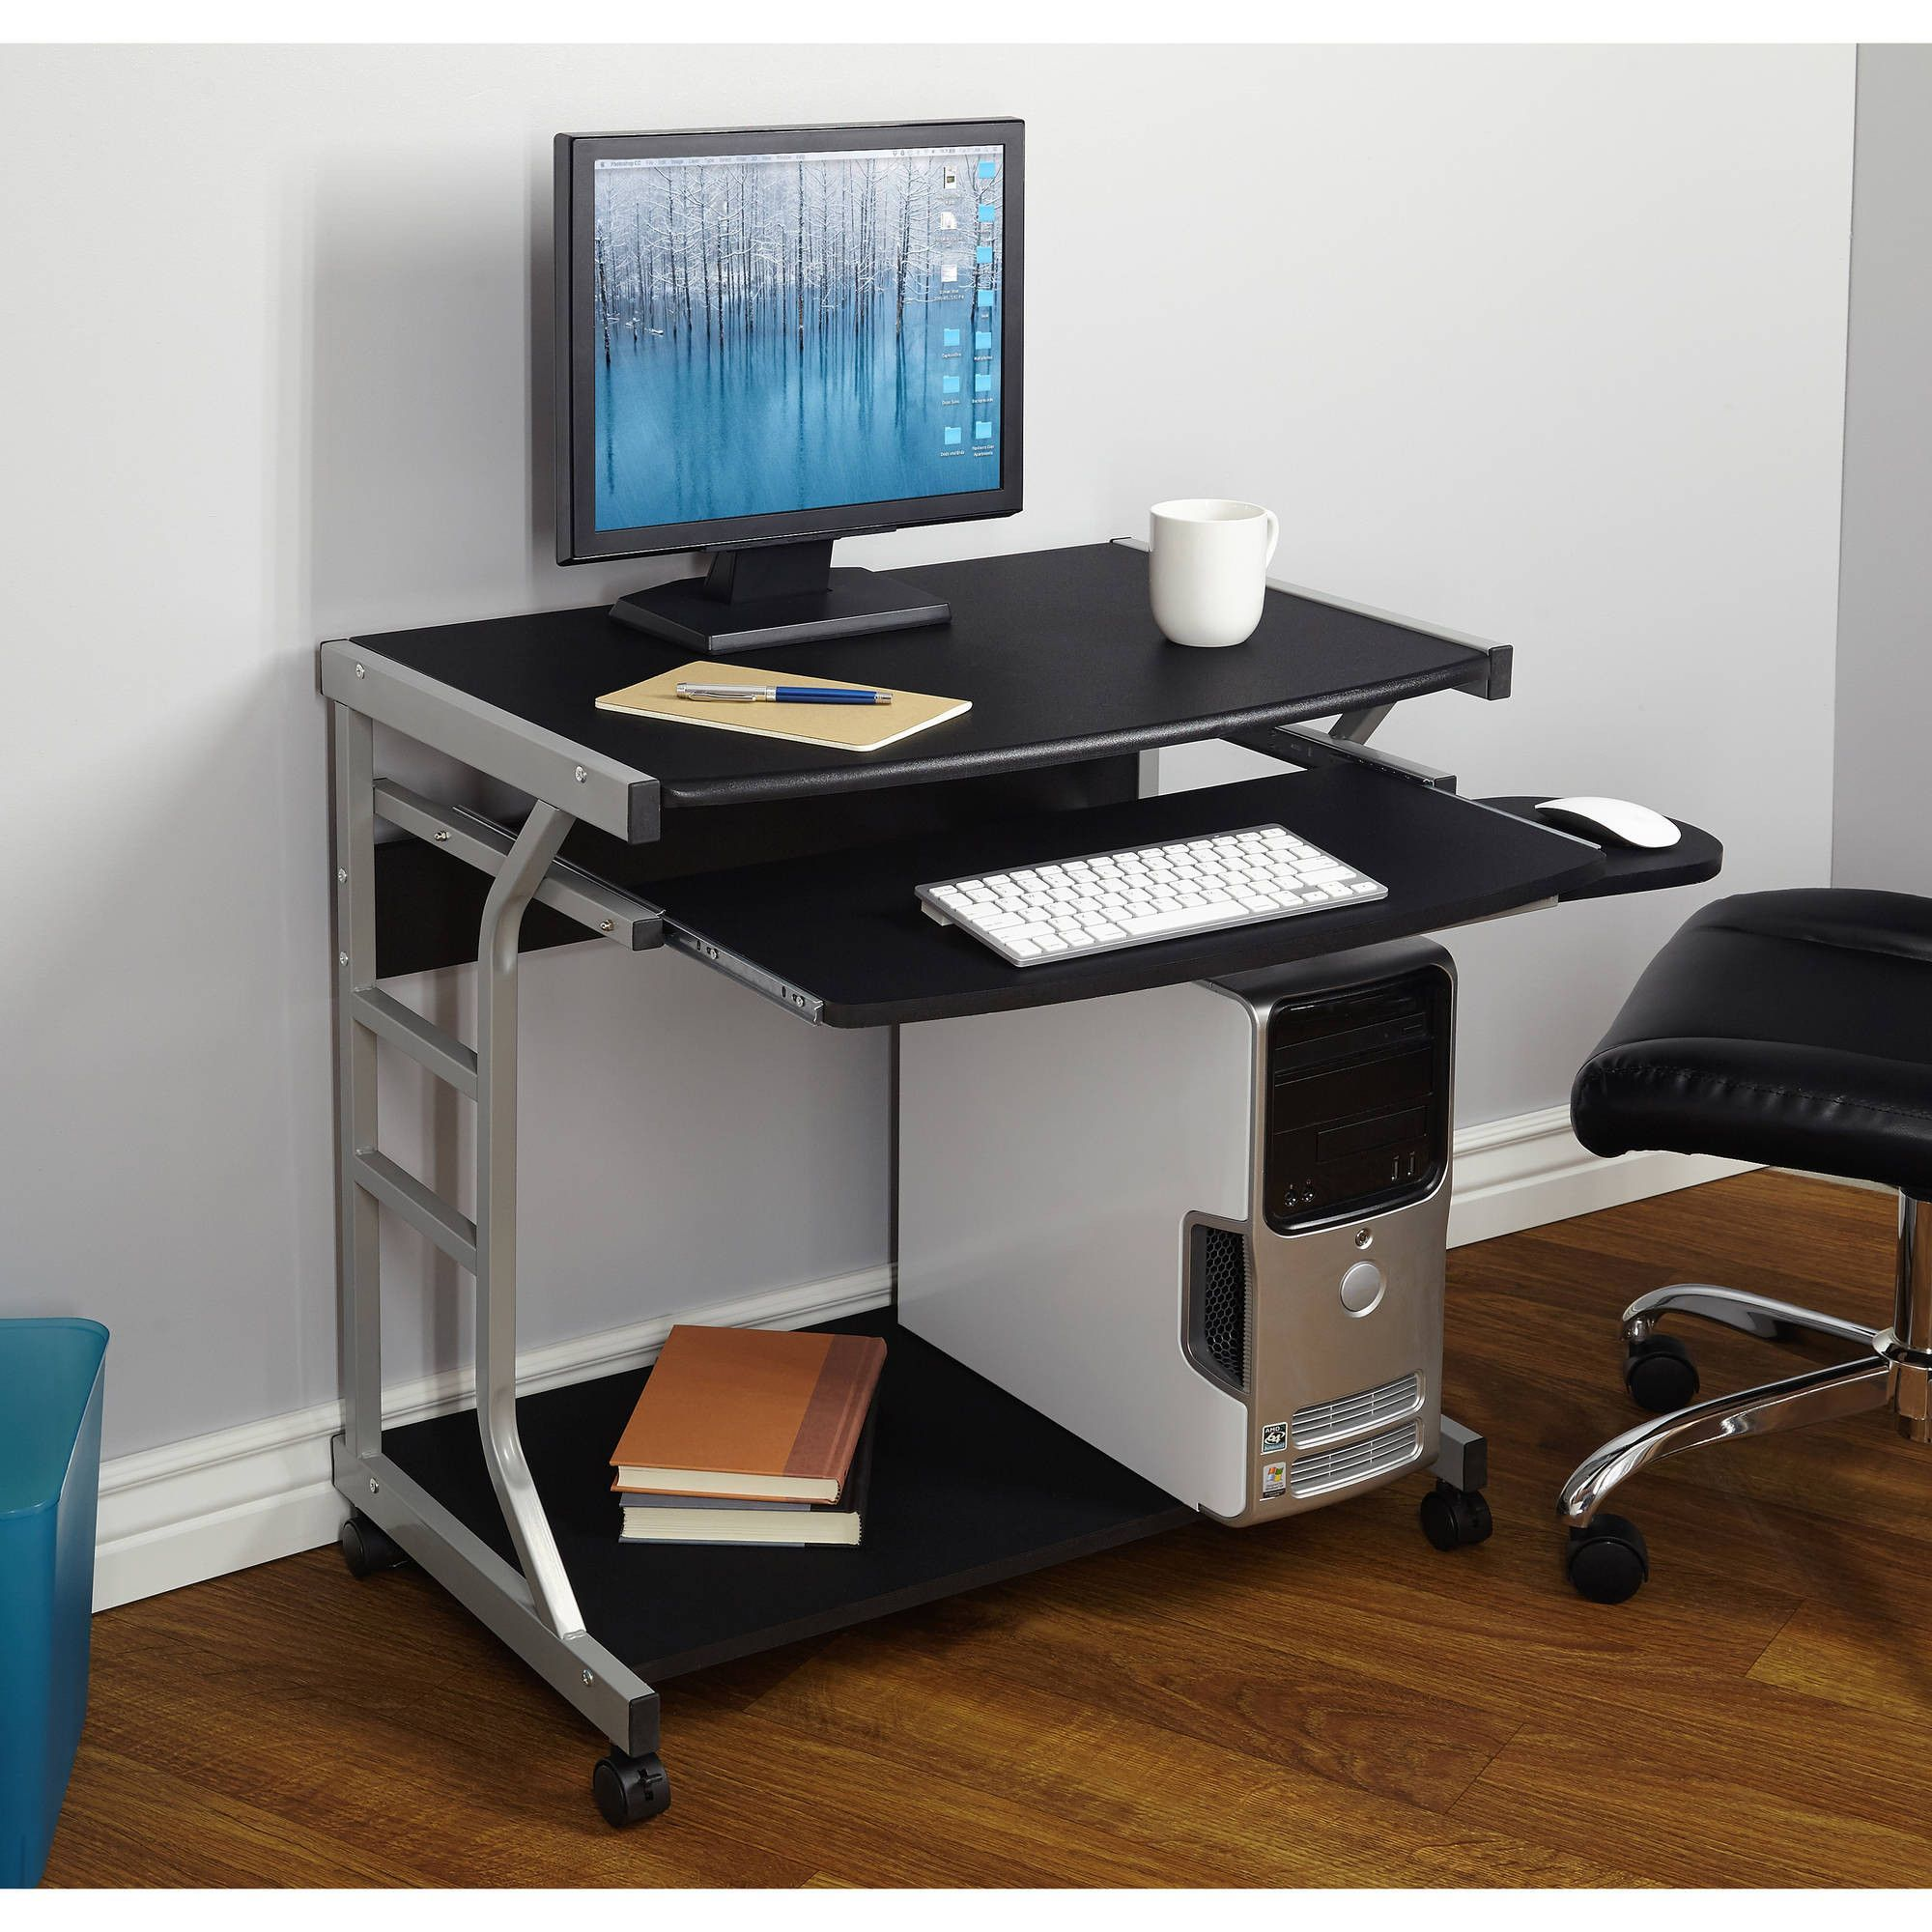 Small Compact Mobile Portable Student Computer Berkeley Desk With Wheels Home Office Furniture Furniture Mobile Computer Desk